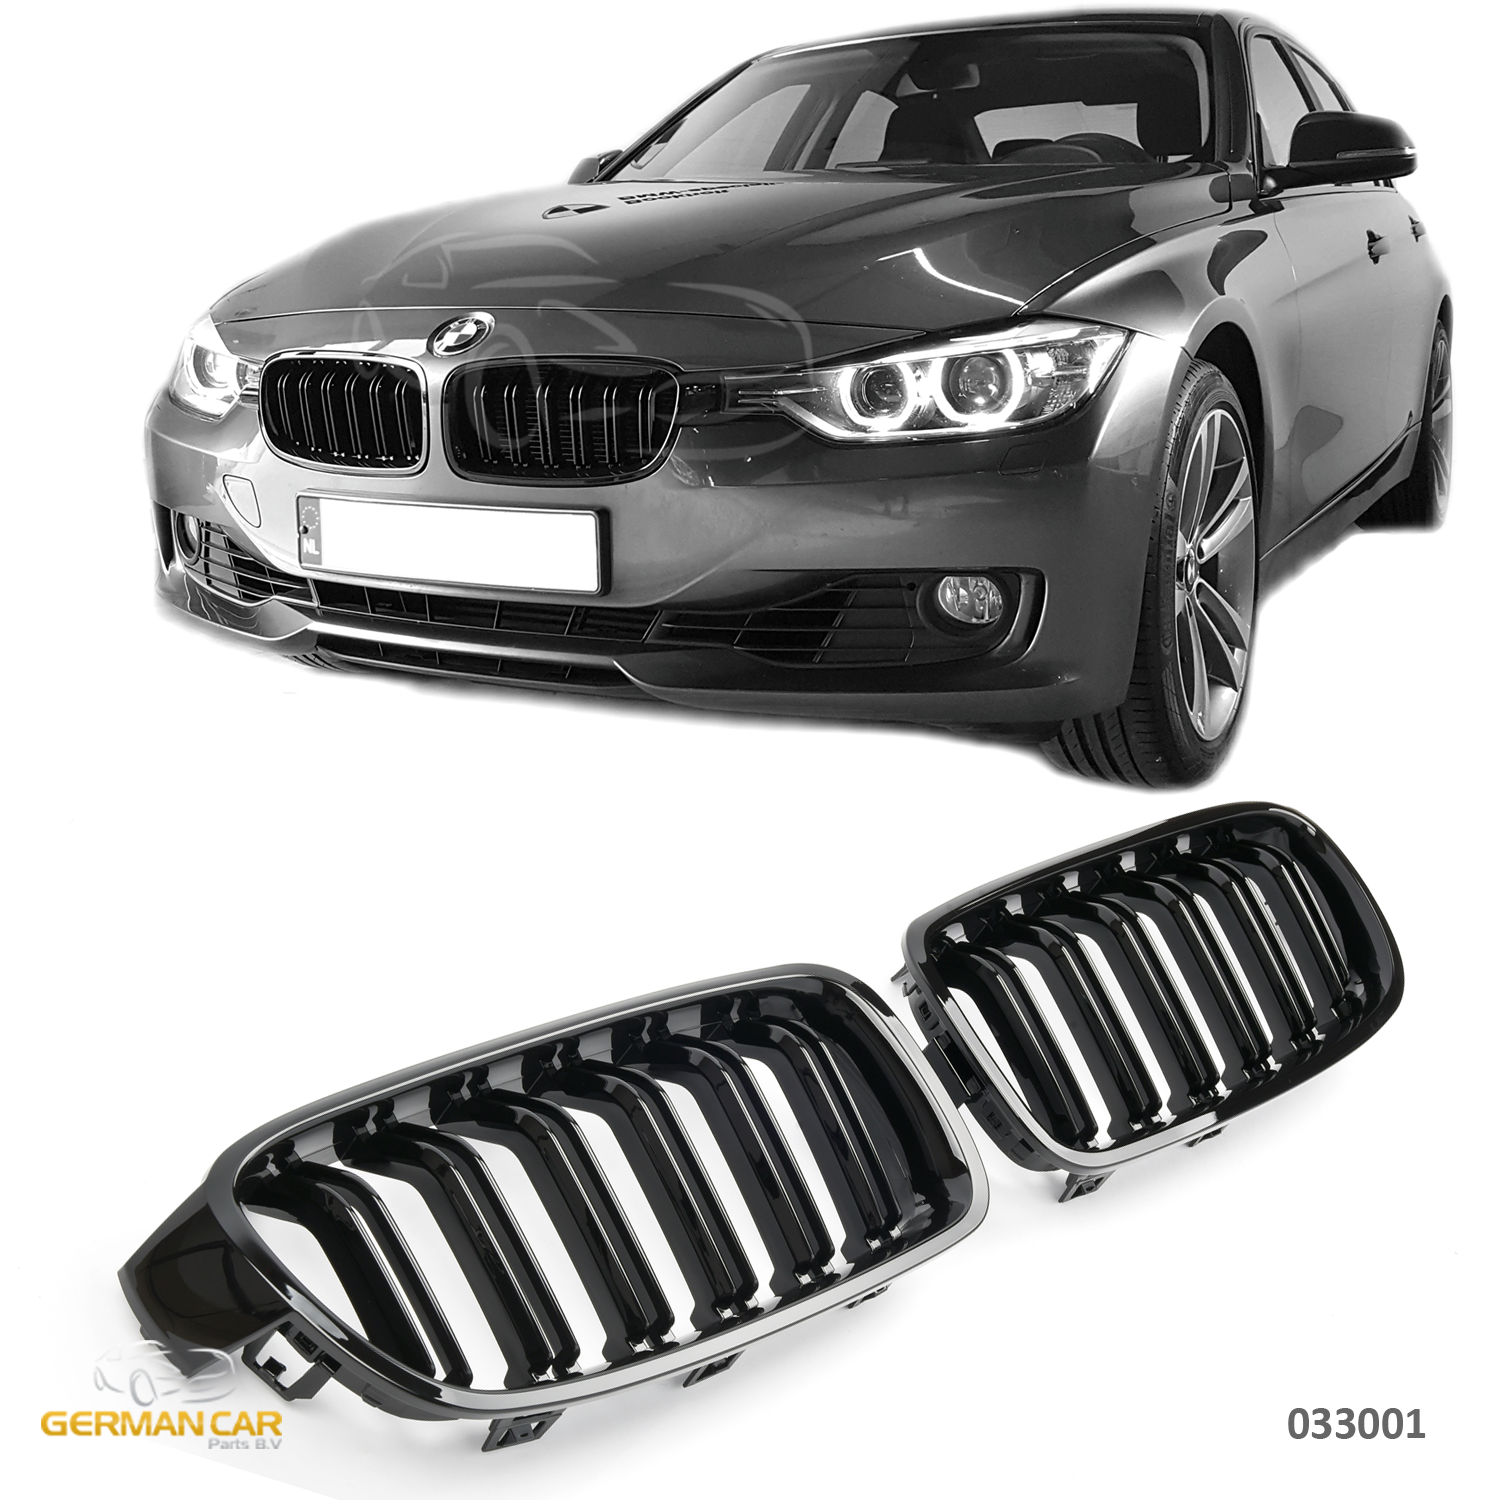 Grille For Bmw F30 F31 Sport Kidney Double Slat M3 Look Glossy Black